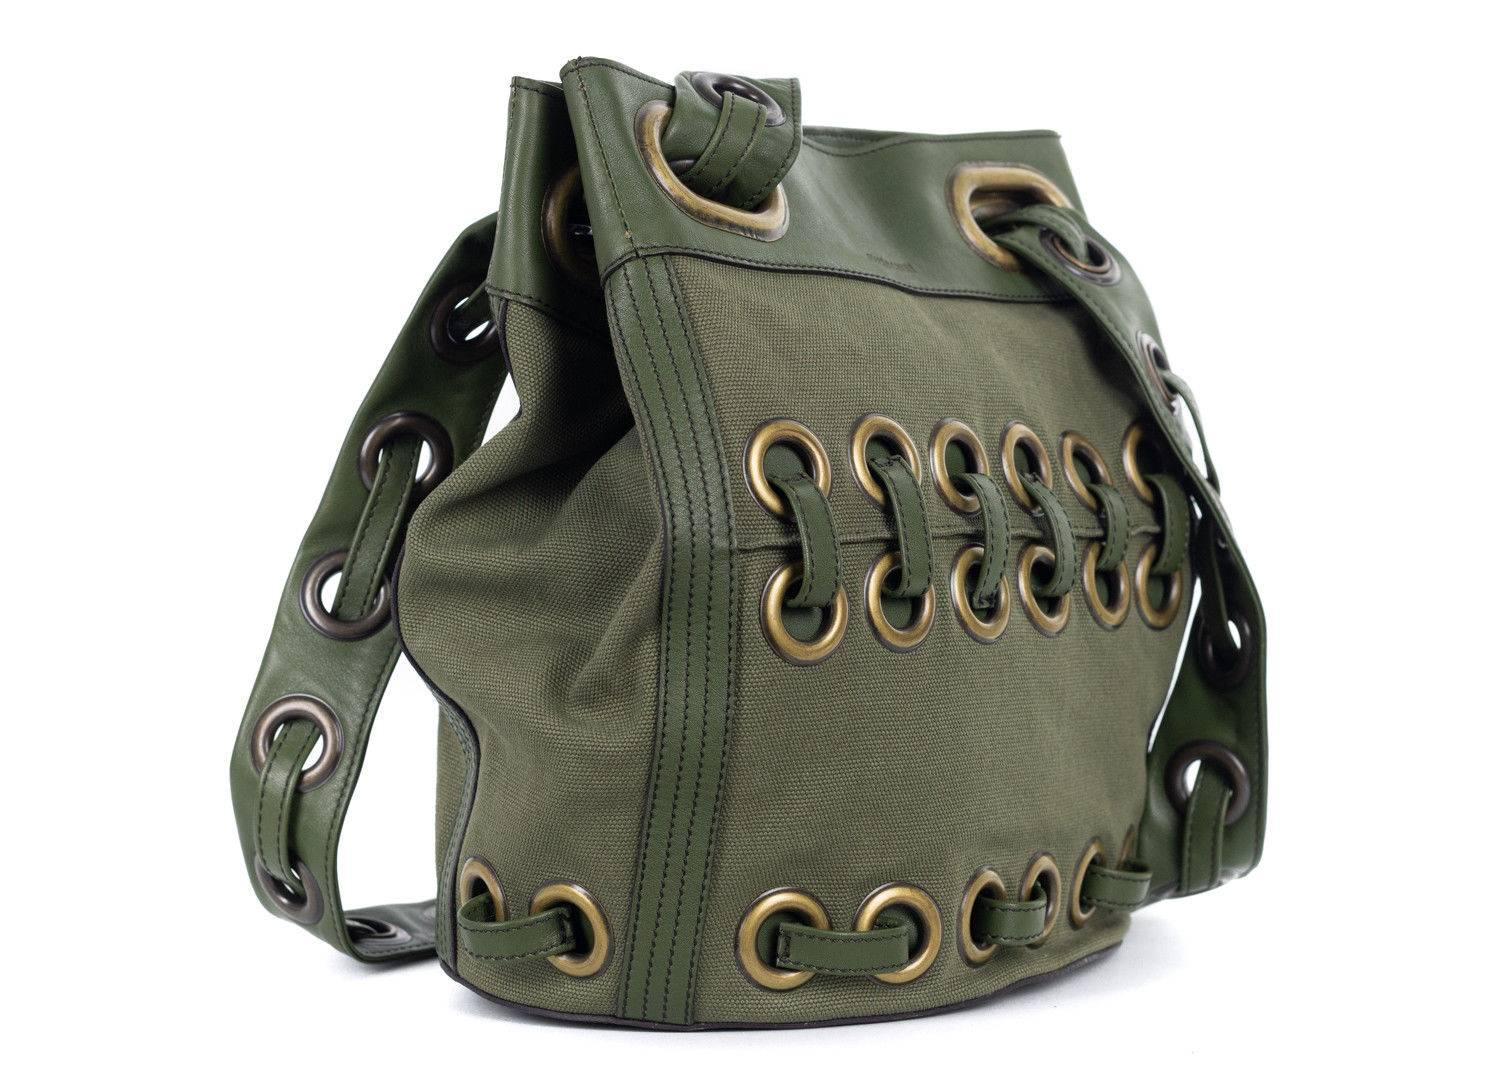 1stdibs Roberto Cavalli Solid Army Green Large Eyelet Canvas Leather Bucket Bag BY1pv2